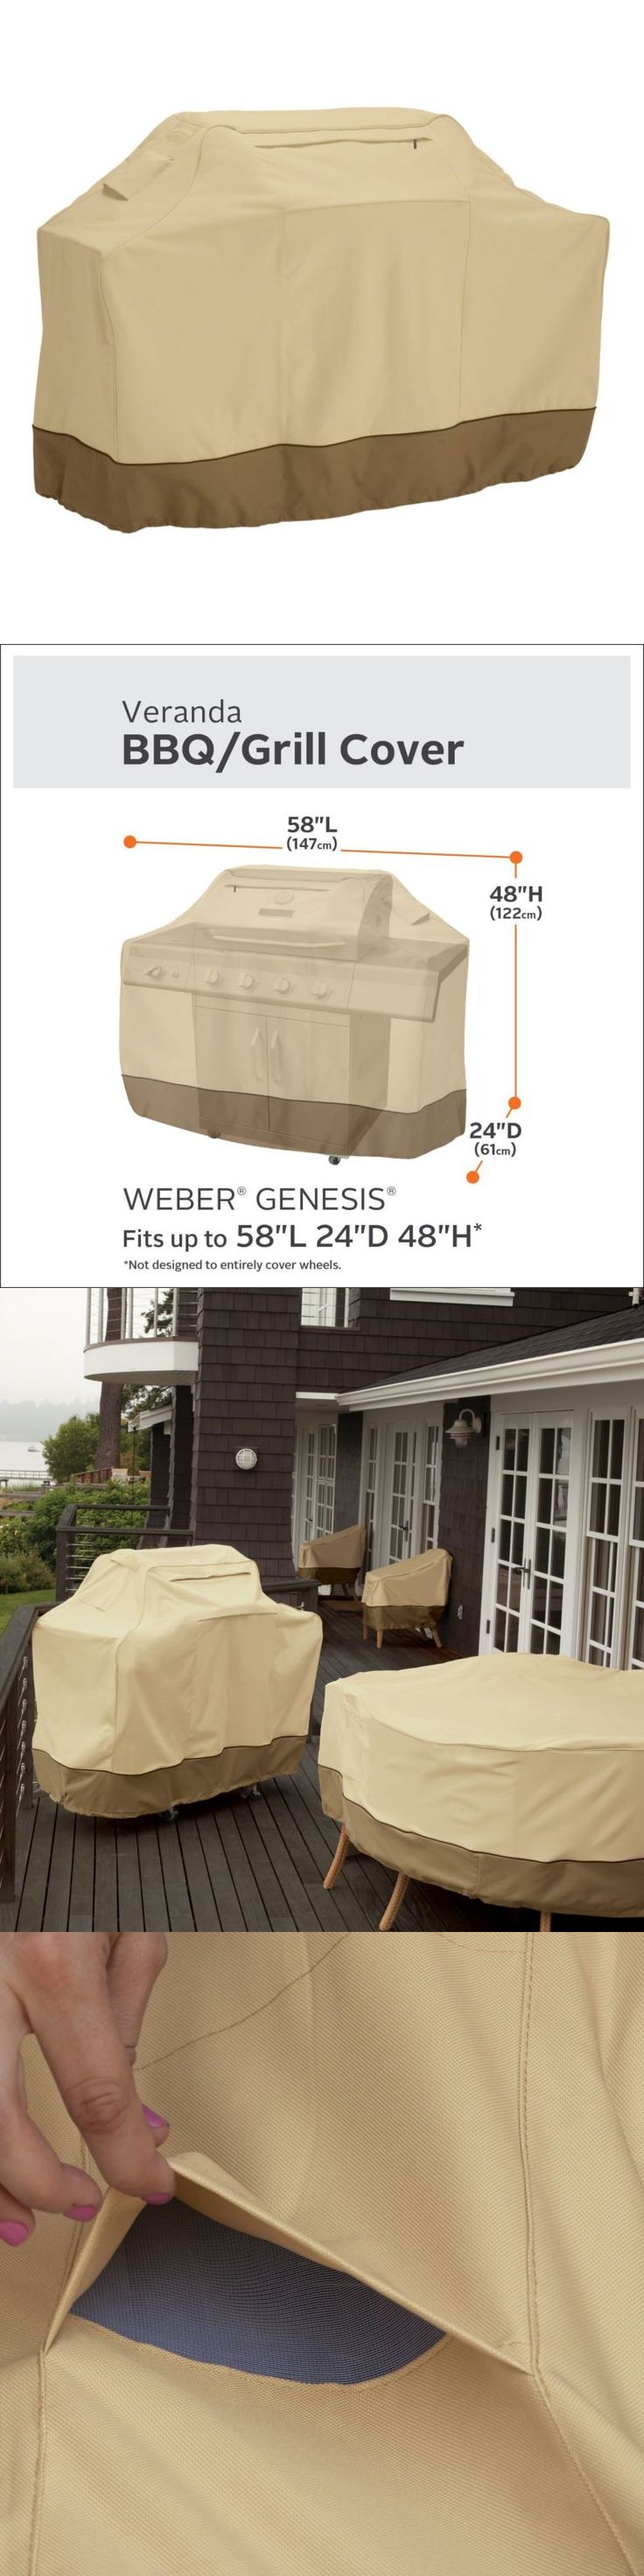 barbecue and grill covers grill cover bbq gas barbecue 58 beige heavy duty waterproof